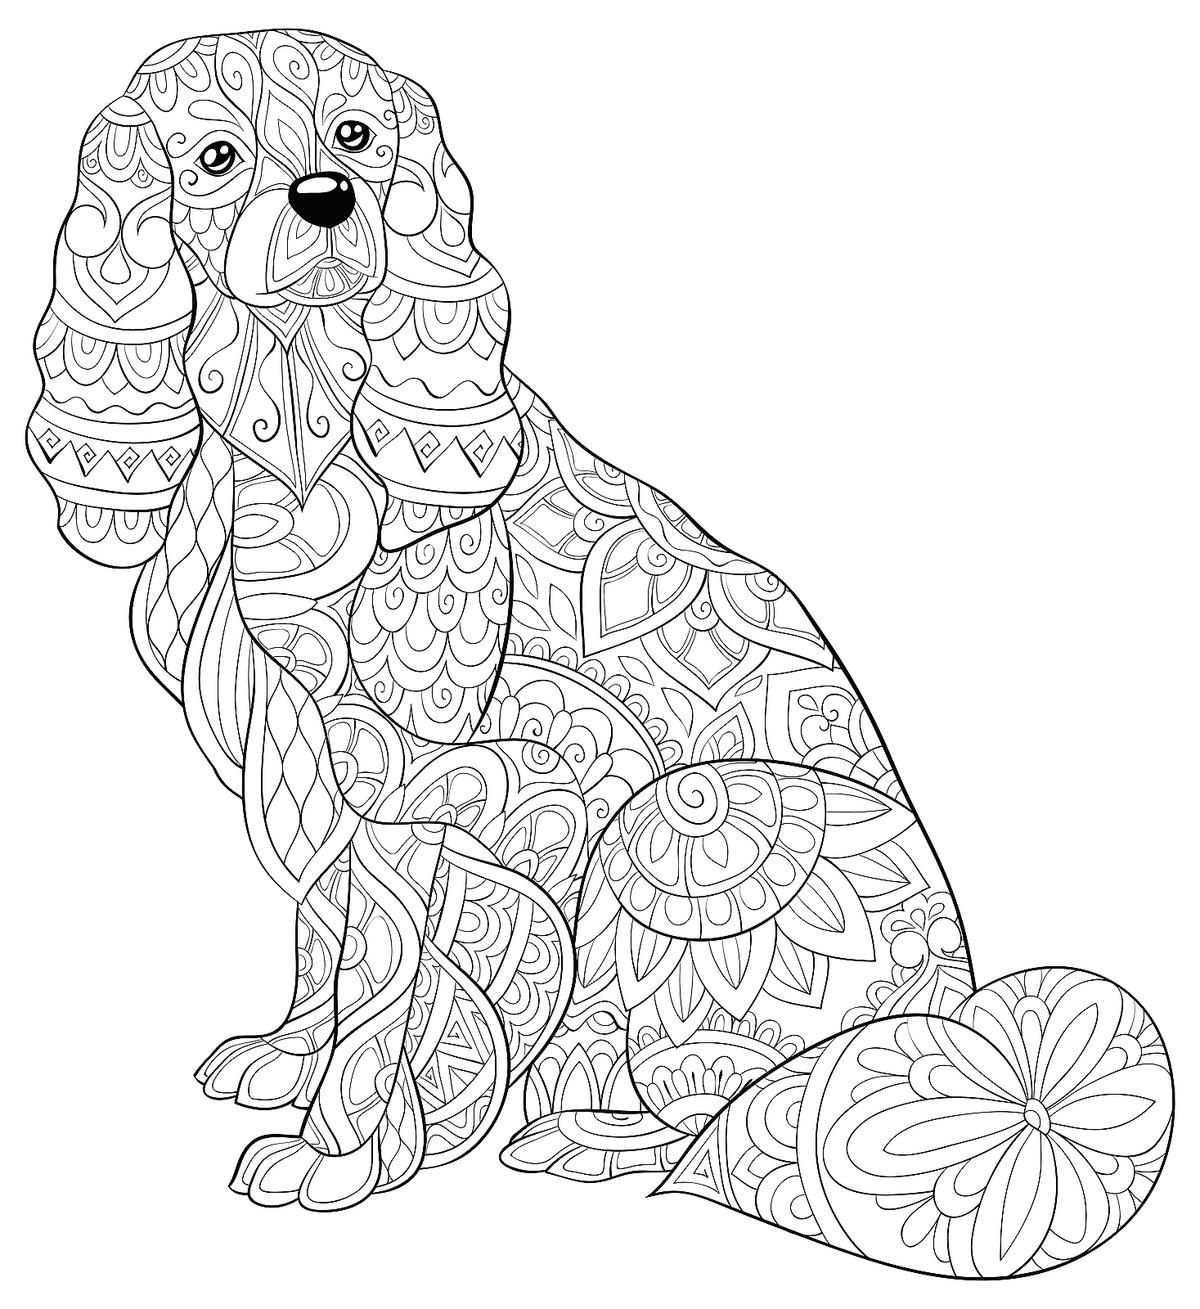 dog coloring in baby dog coloring page free coloring pages online dog in coloring